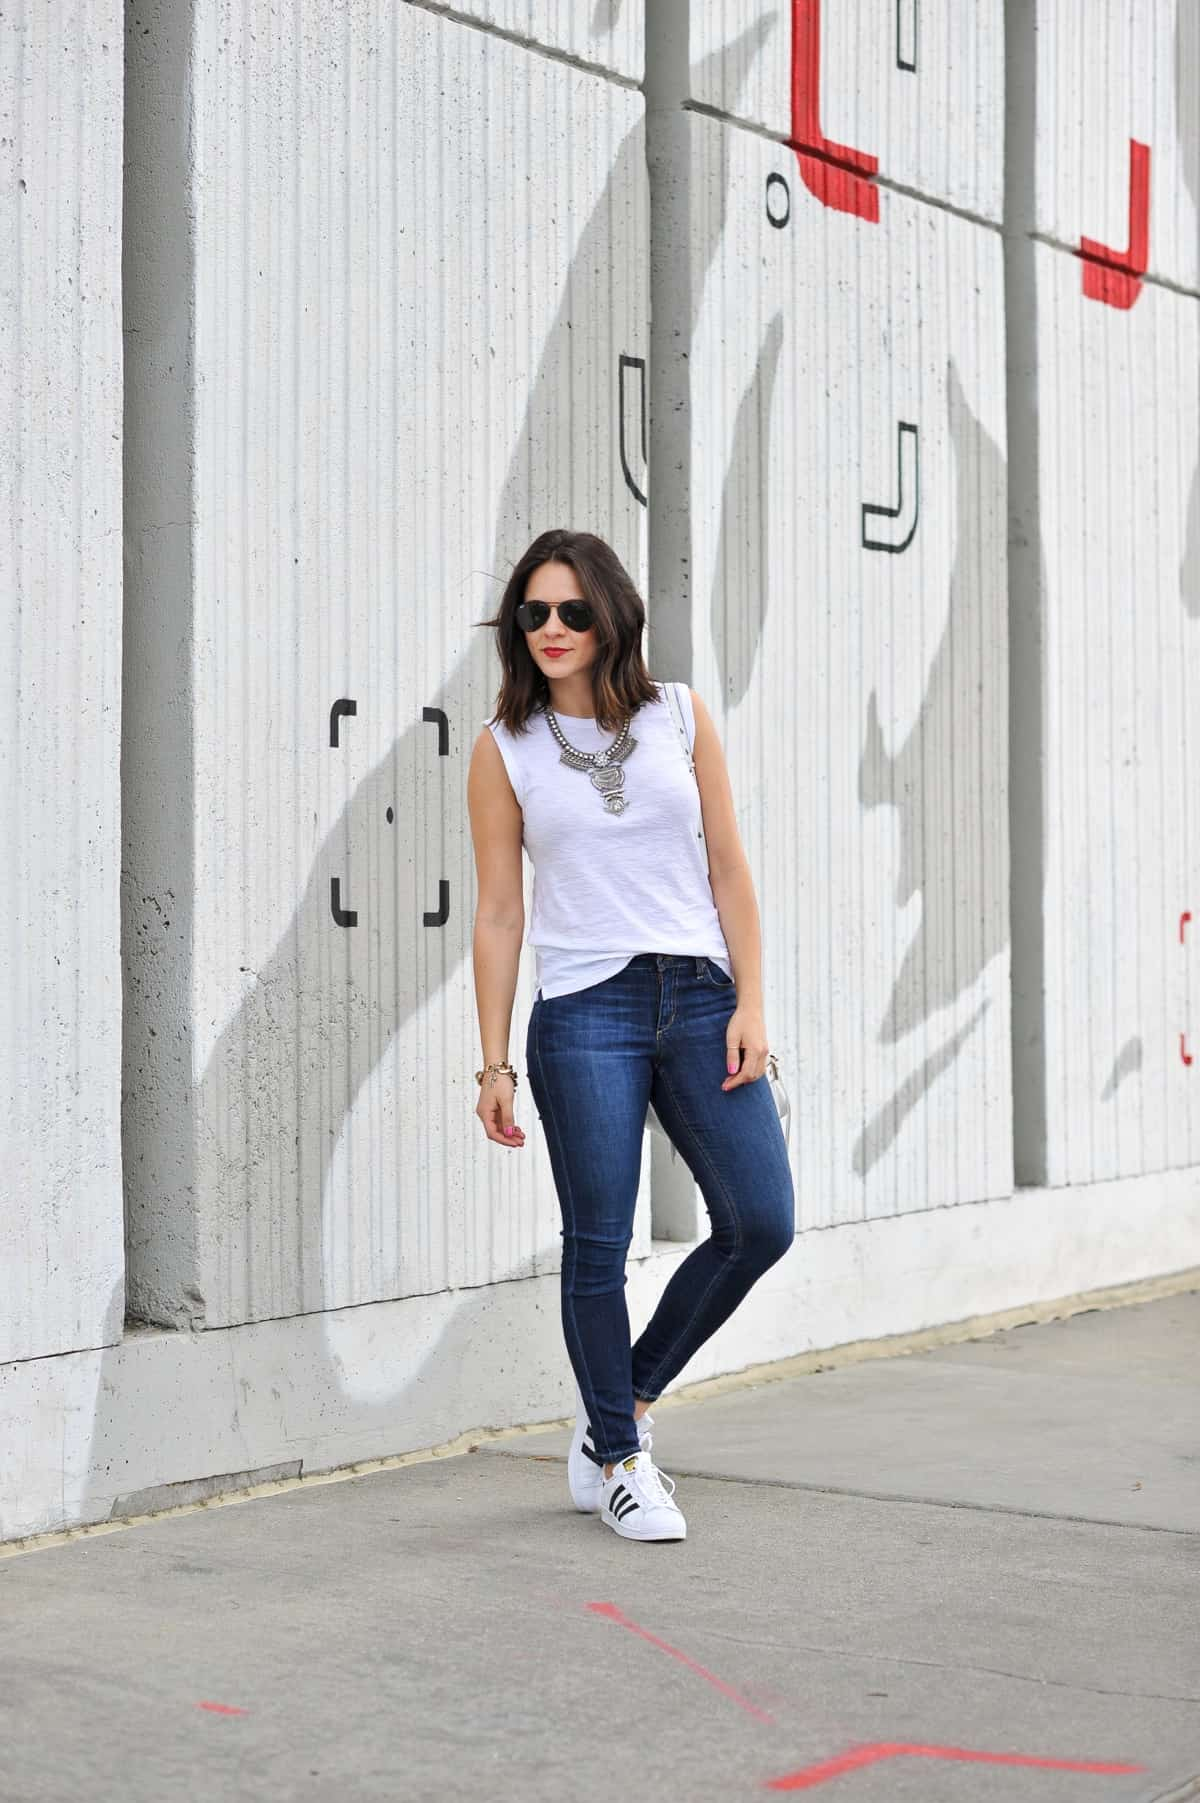 street style with adidas and jeans